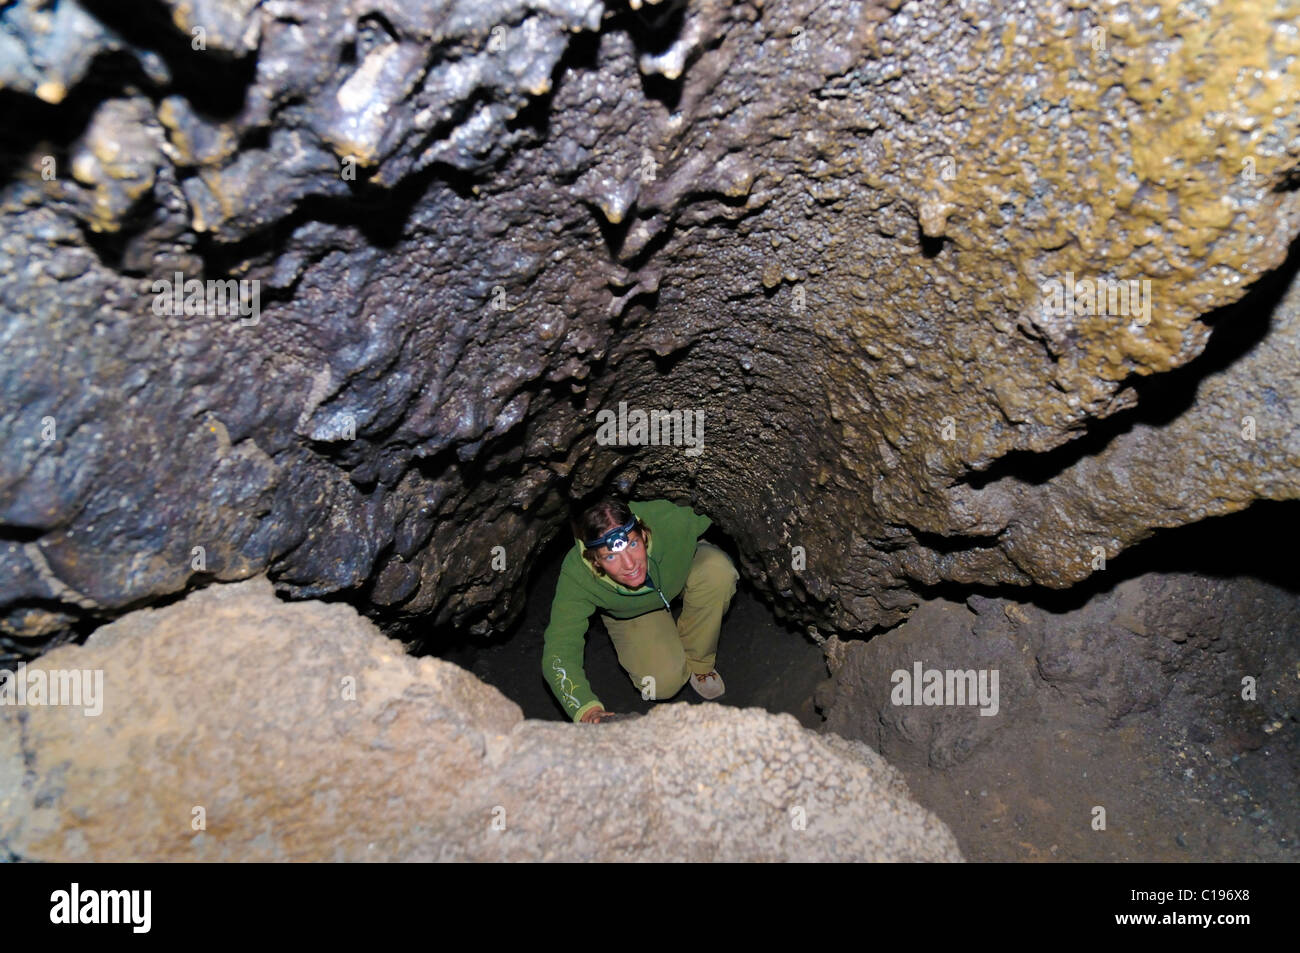 Lava River Cave, cave explorer wearing a headlamp in a volcanic lava tube, Newberry National Volcanic Monument - Stock Image